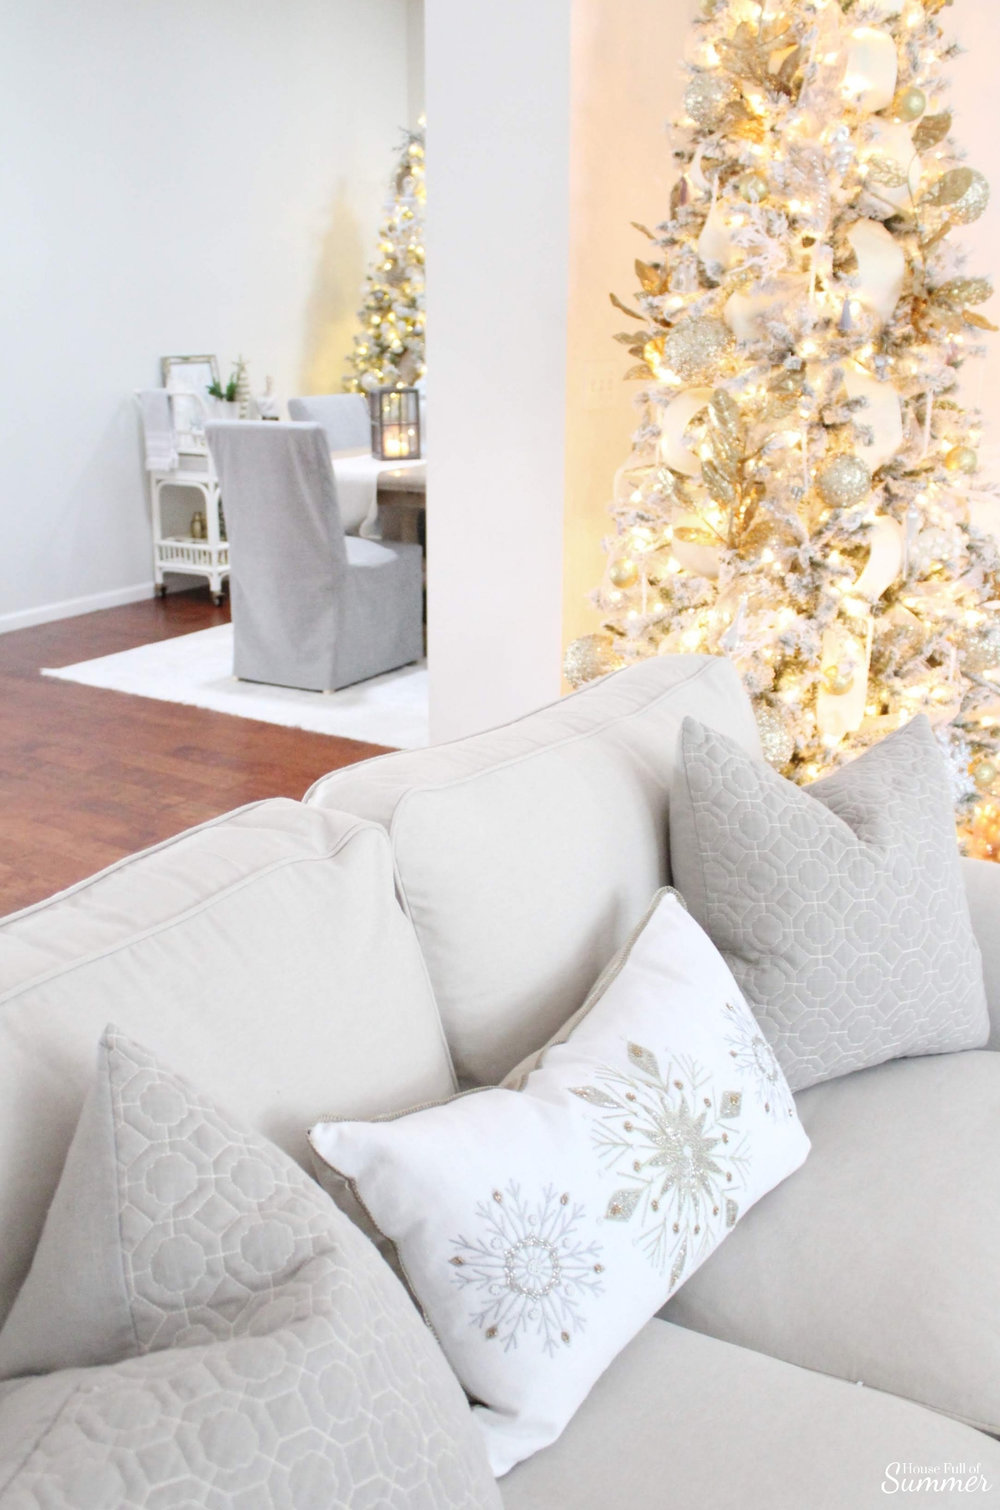 A Charming Southern Christmas Home Tour {Part 1} | House Full of Summer - Gold Magnolias and Southern influences in Christmas decor, neutral Christmas decorating, foyer, living room, Christmas centerpiece, greenery, DIY holiday arrangement, coastal decor, Southern Christmas tree ornament ideas tassel ornaments